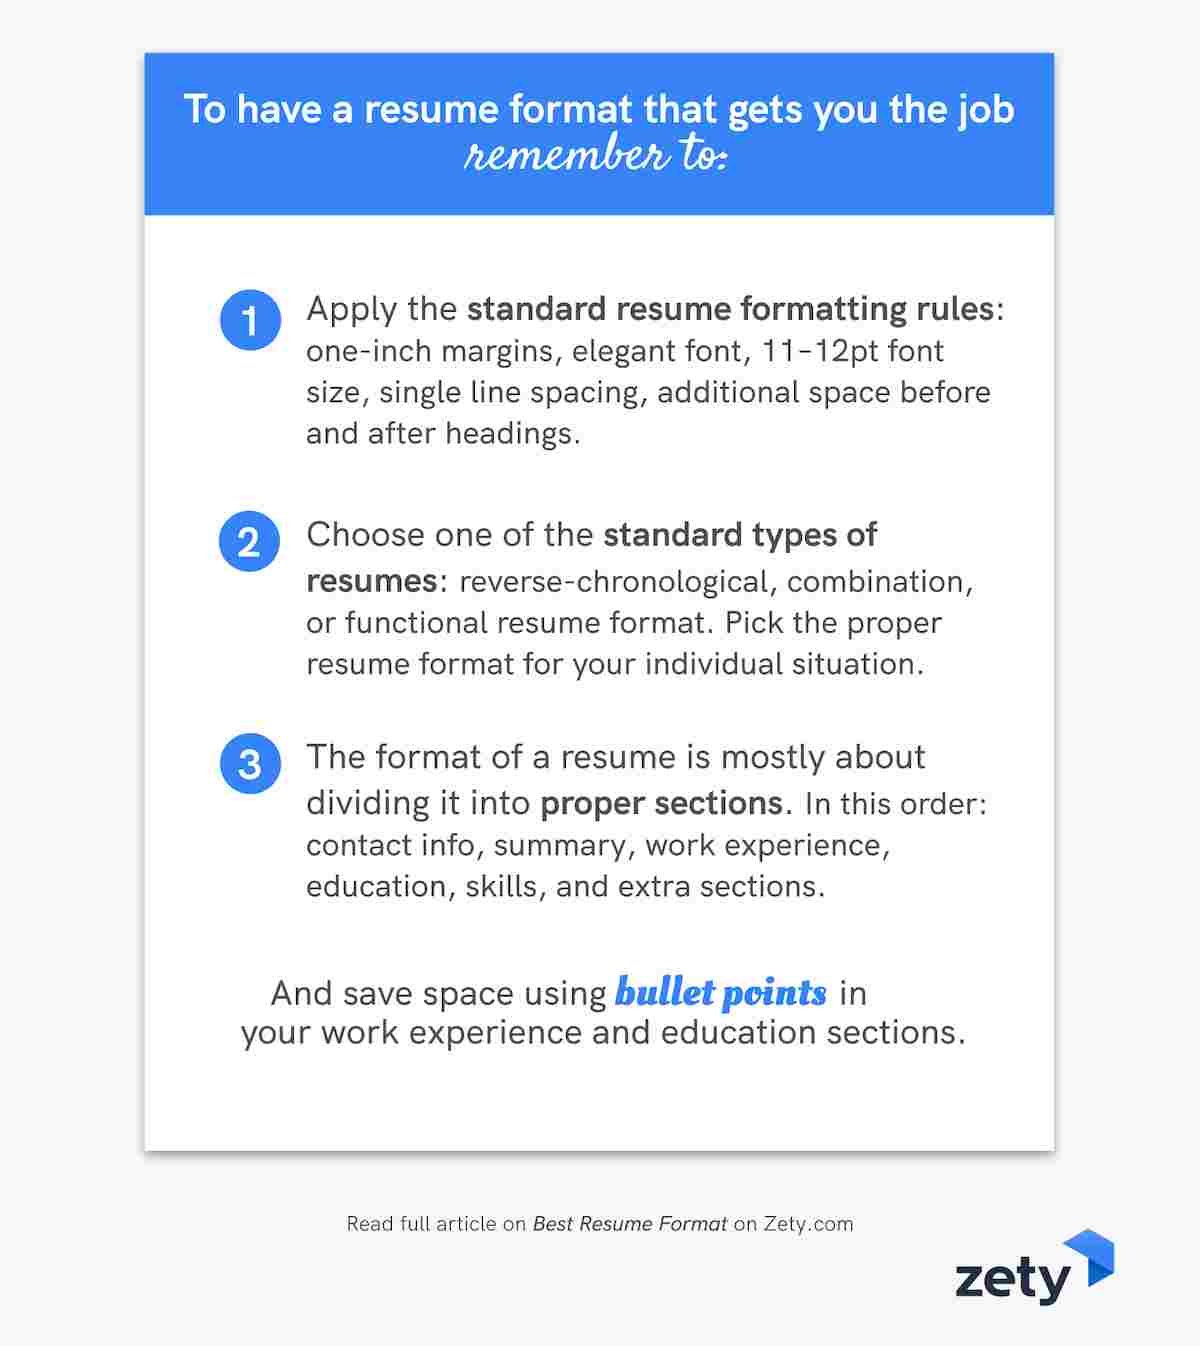 Key strategies for the perfect resume format